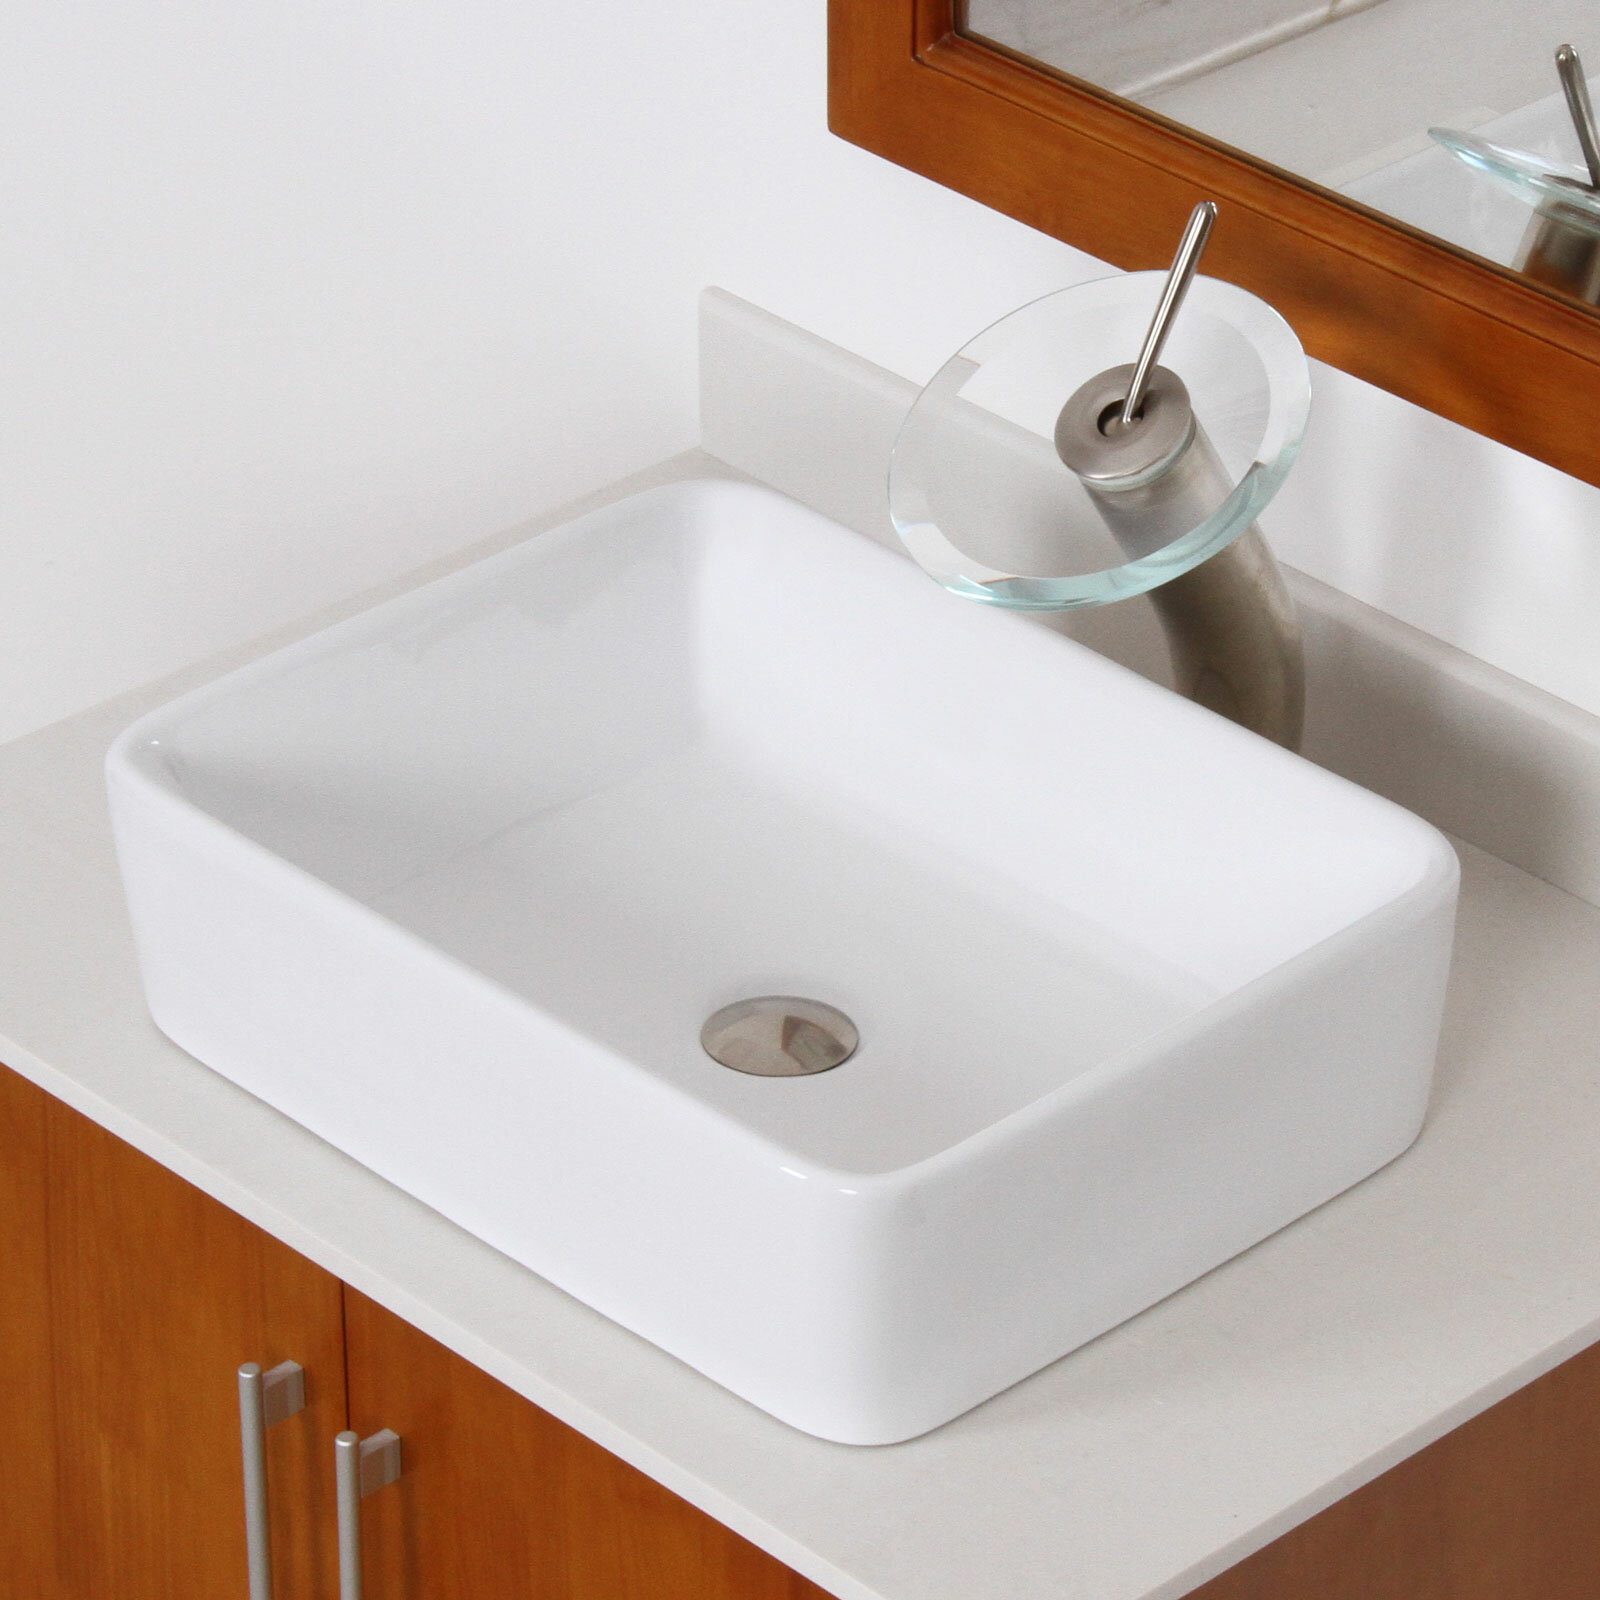 Elite ceramic rectangular vessel bathroom sink reviews for Are vessel sinks out of style